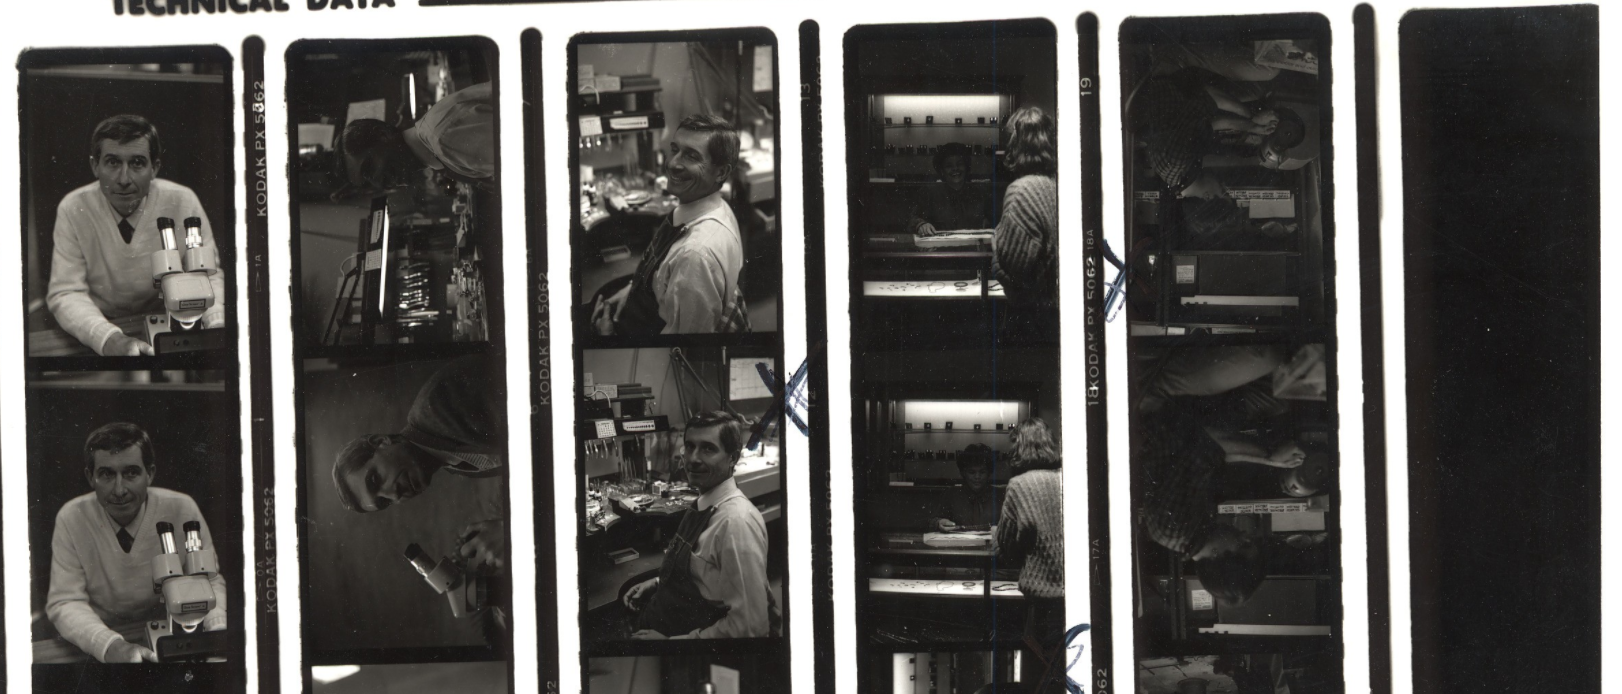 Close up crop of a black and white contact print of Baum Jewelry Craftsmen employees working in the store.